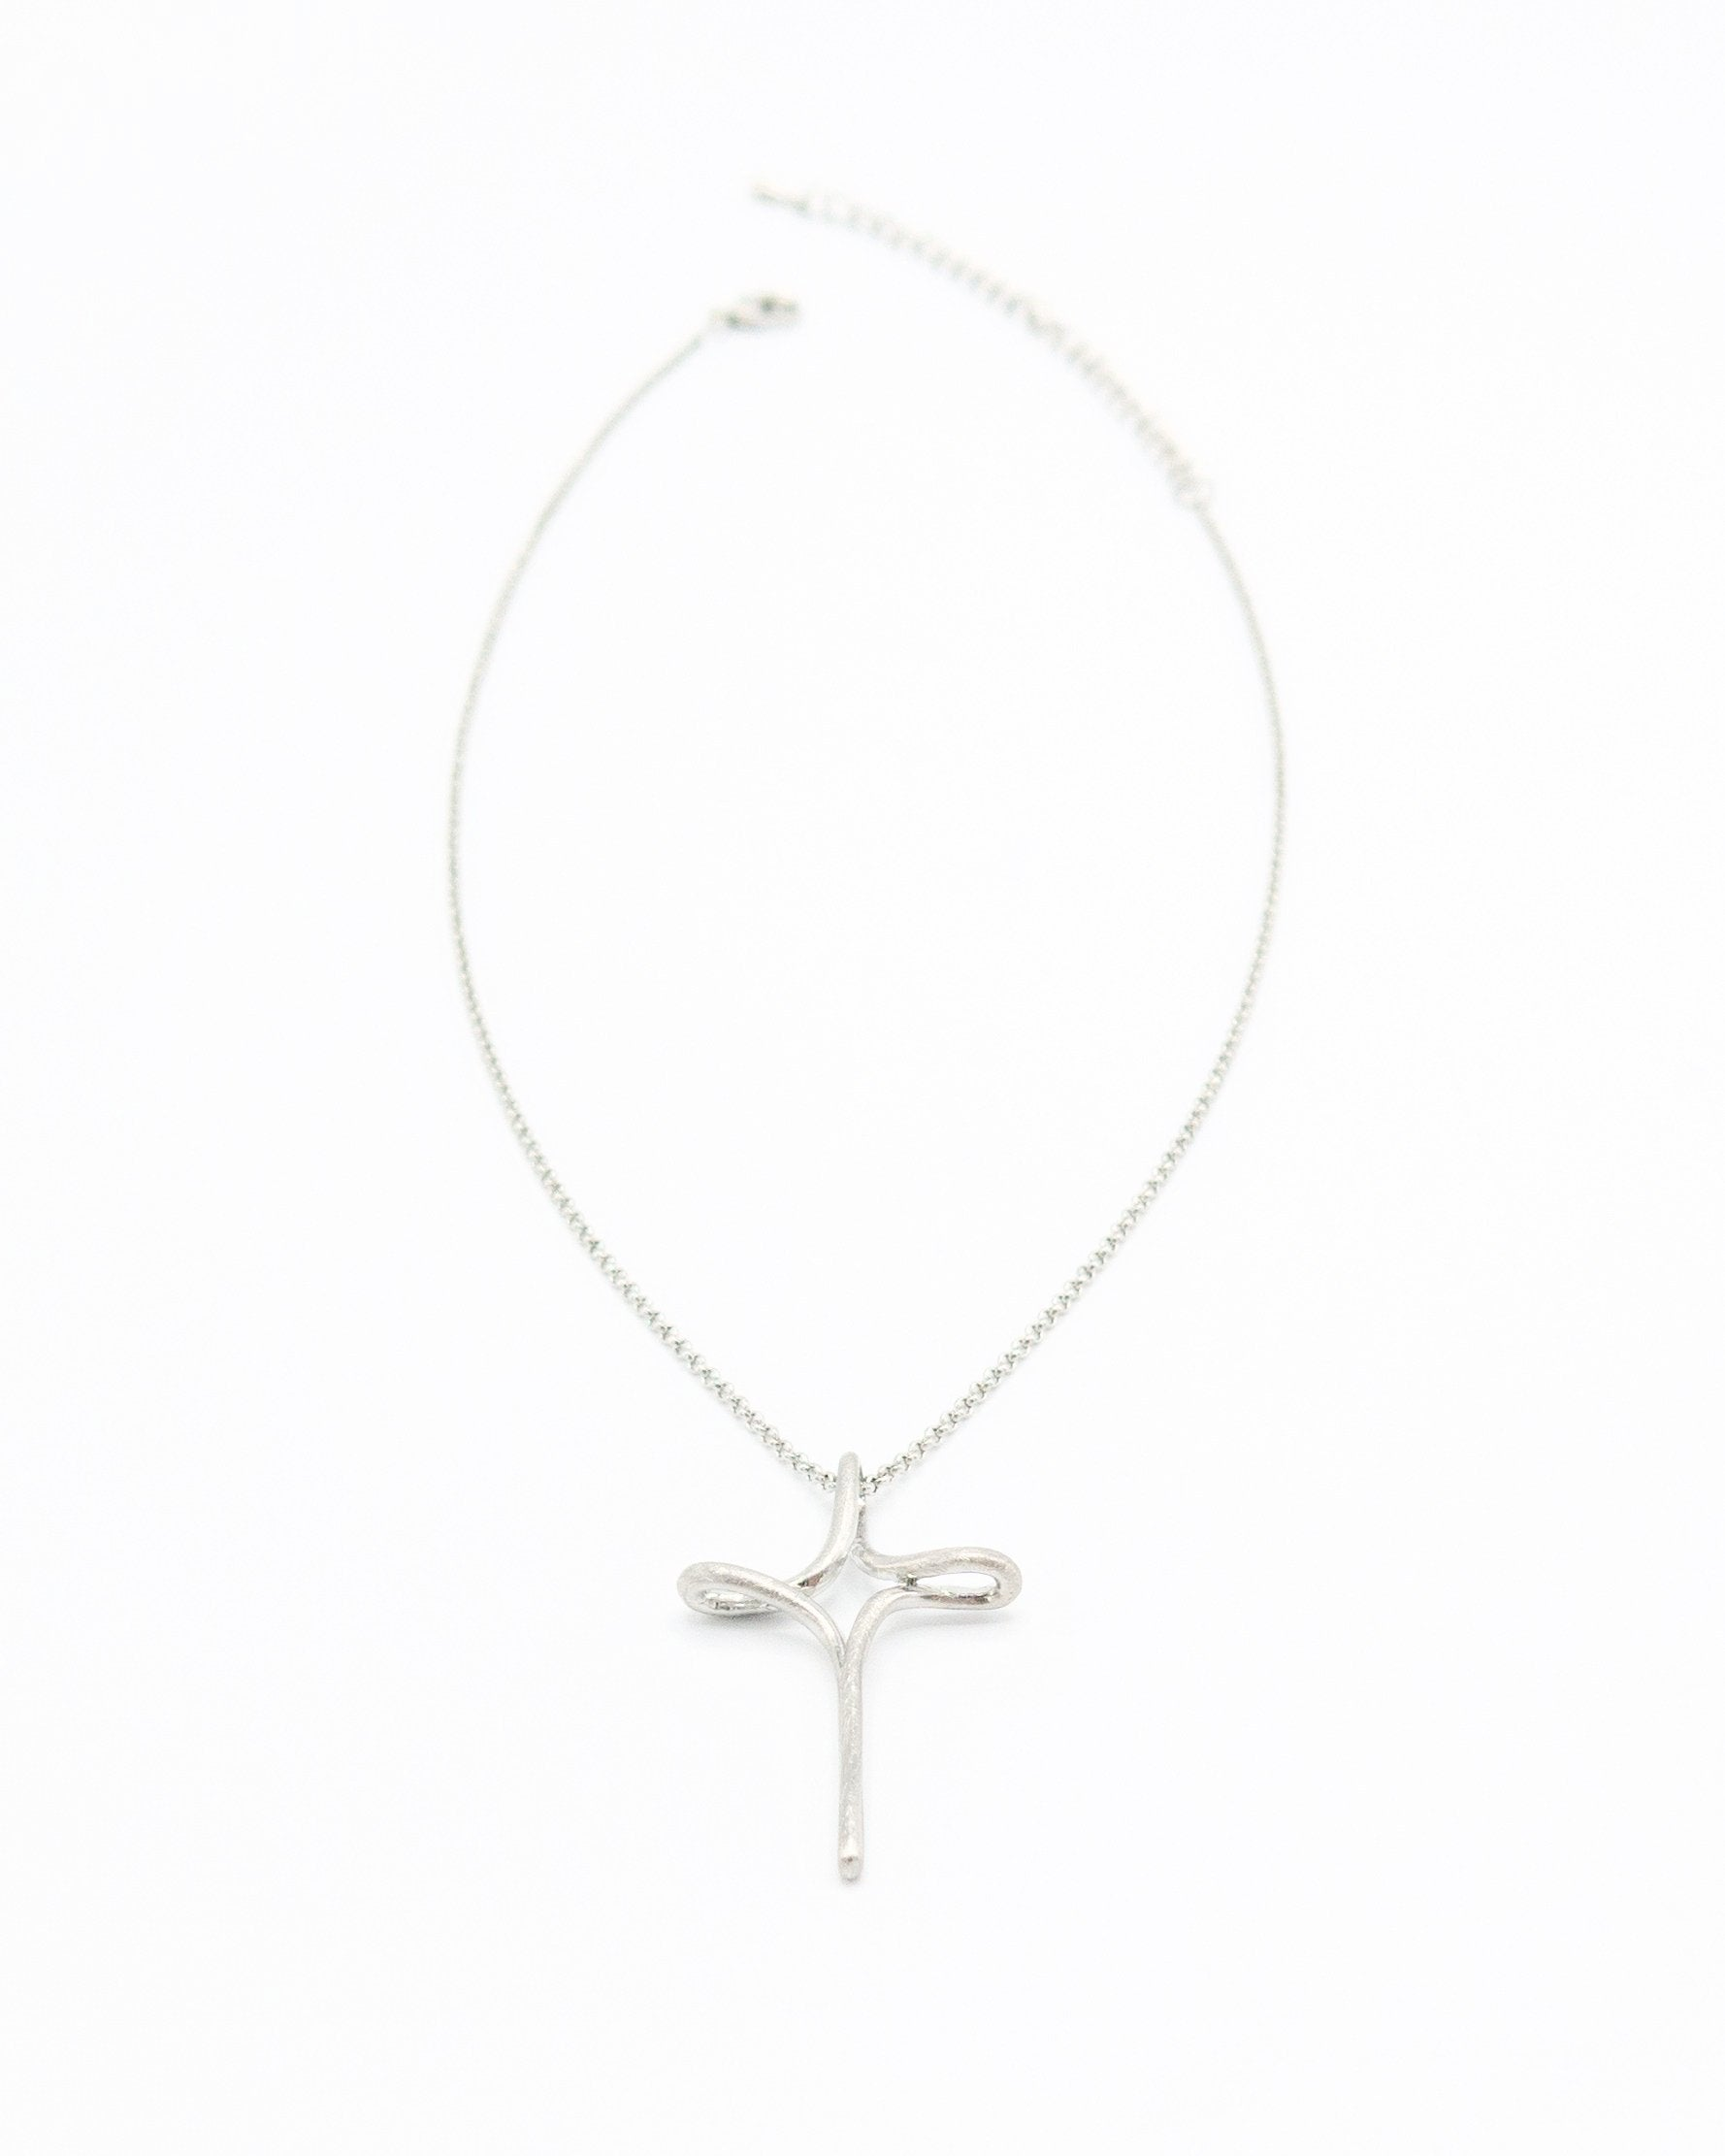 Brushed and Shiny Mid Length Silver Cross Necklace